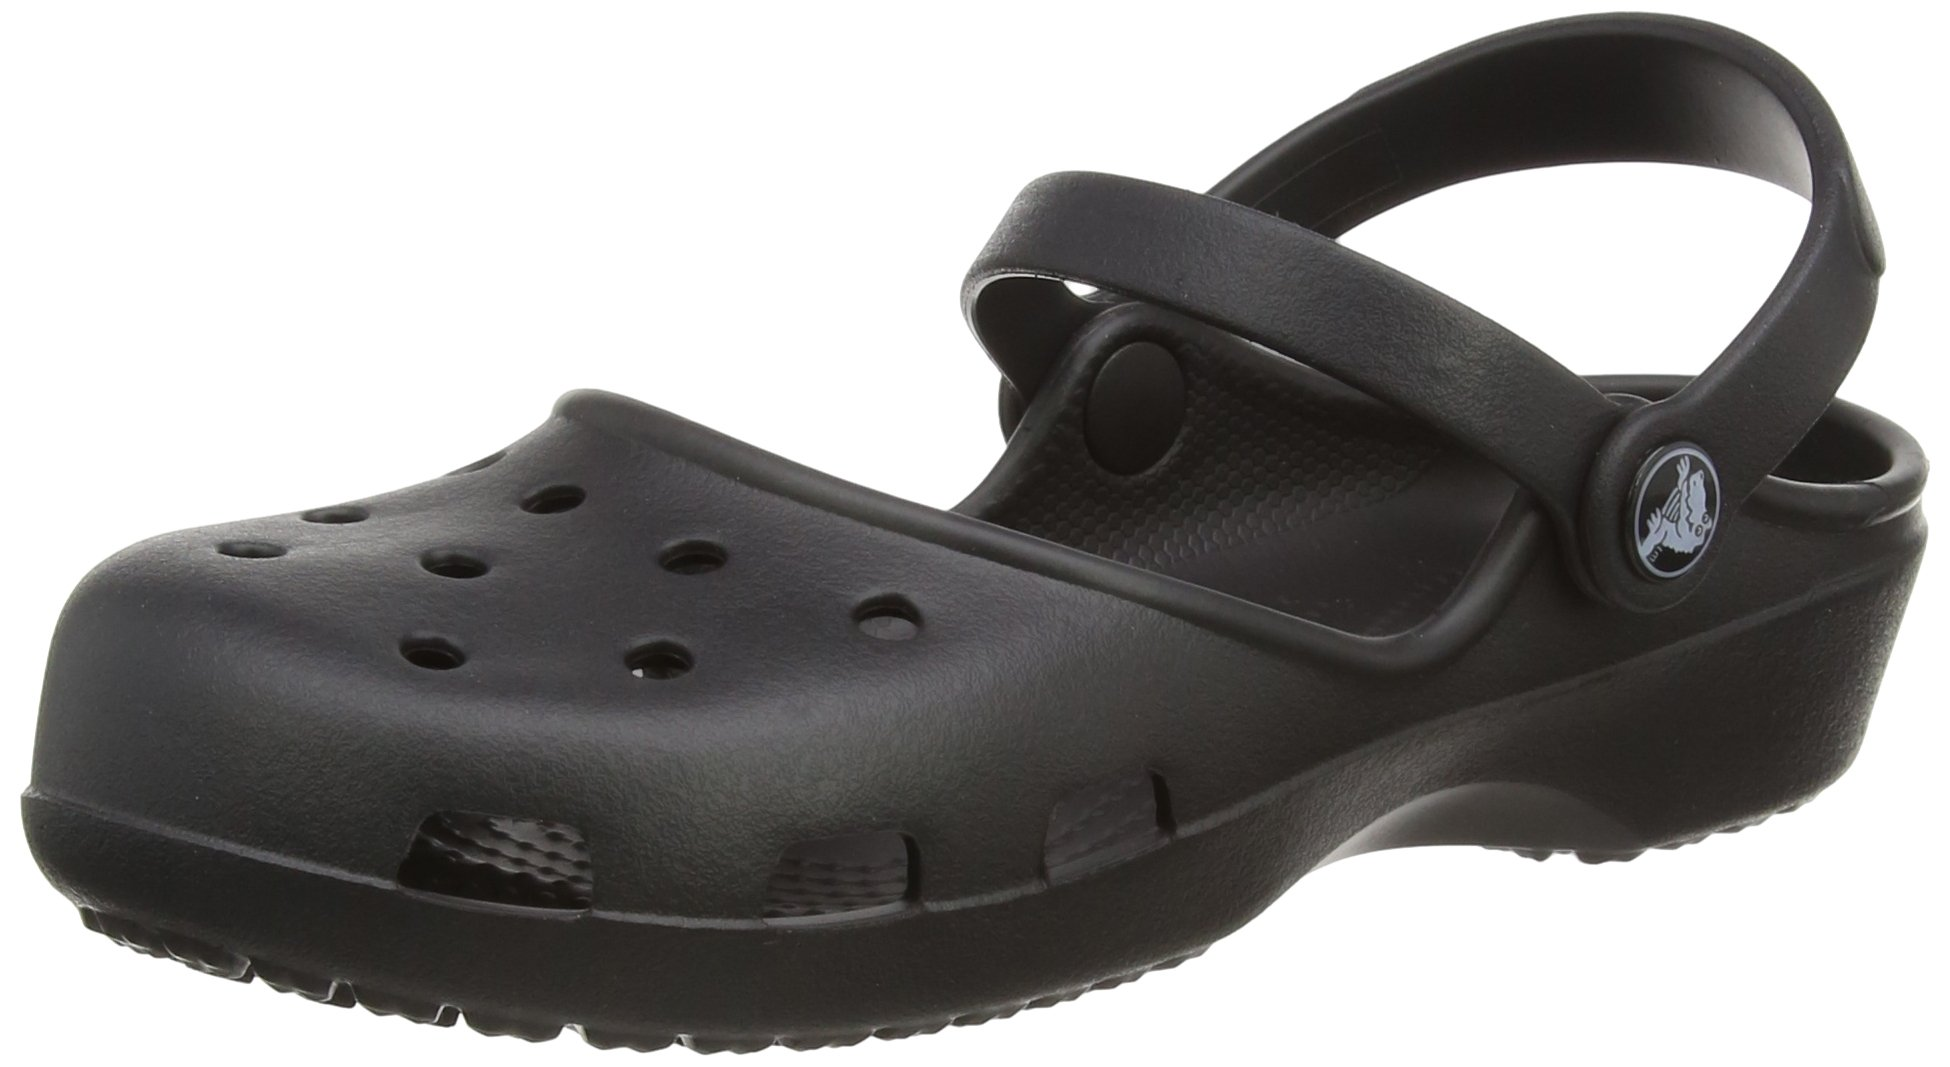 Crocs Women's Karin Clog, Black, 8 M US